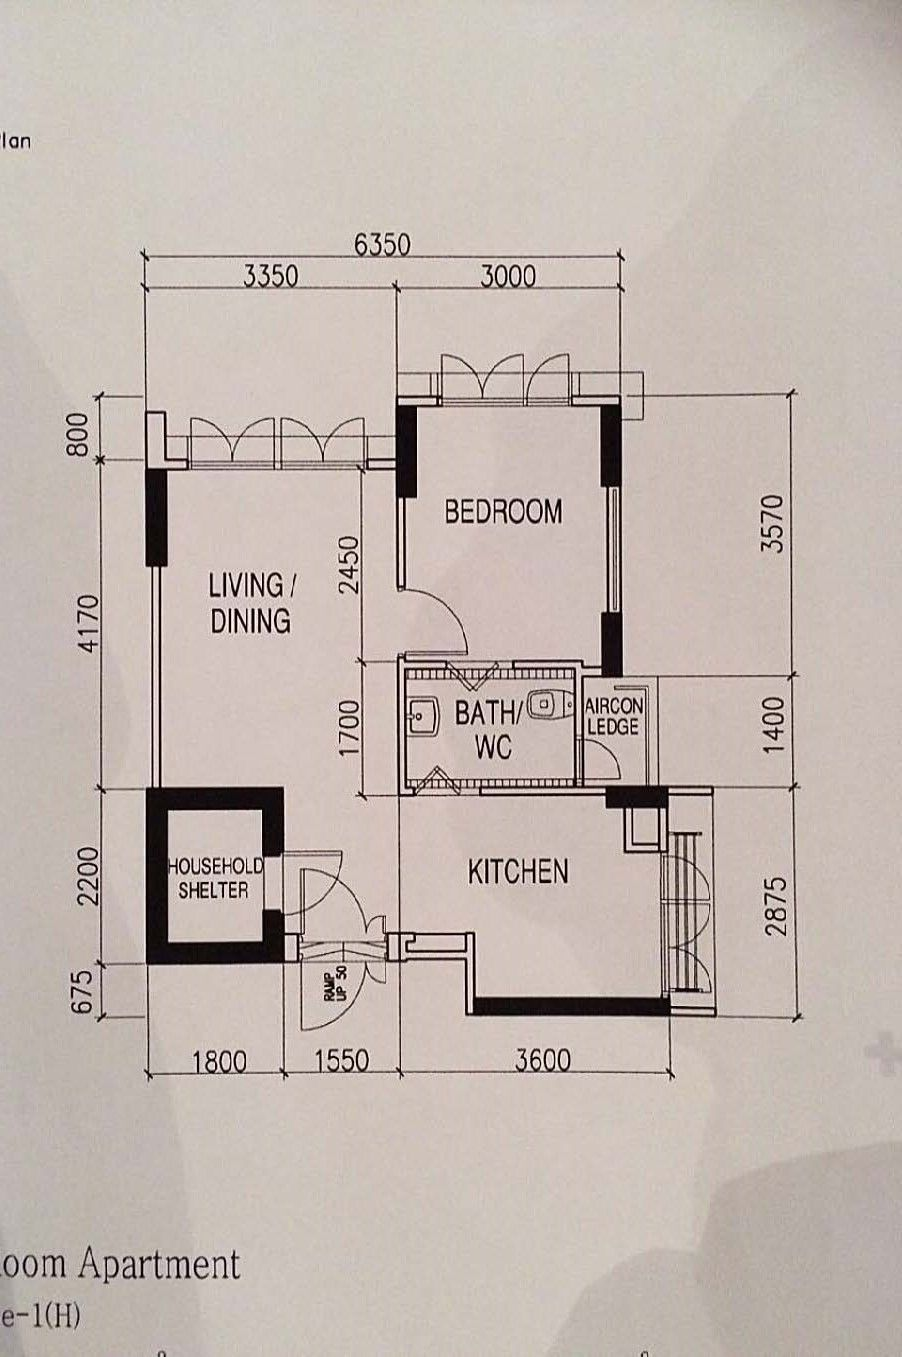 Floor Plan Kitchen Toilet Door To Seal Up Erect New Wall To Make Kitchen Door Smaller Knock Down Wall At Bedroom And C Knock Down Wall How To Plan Tv Wall